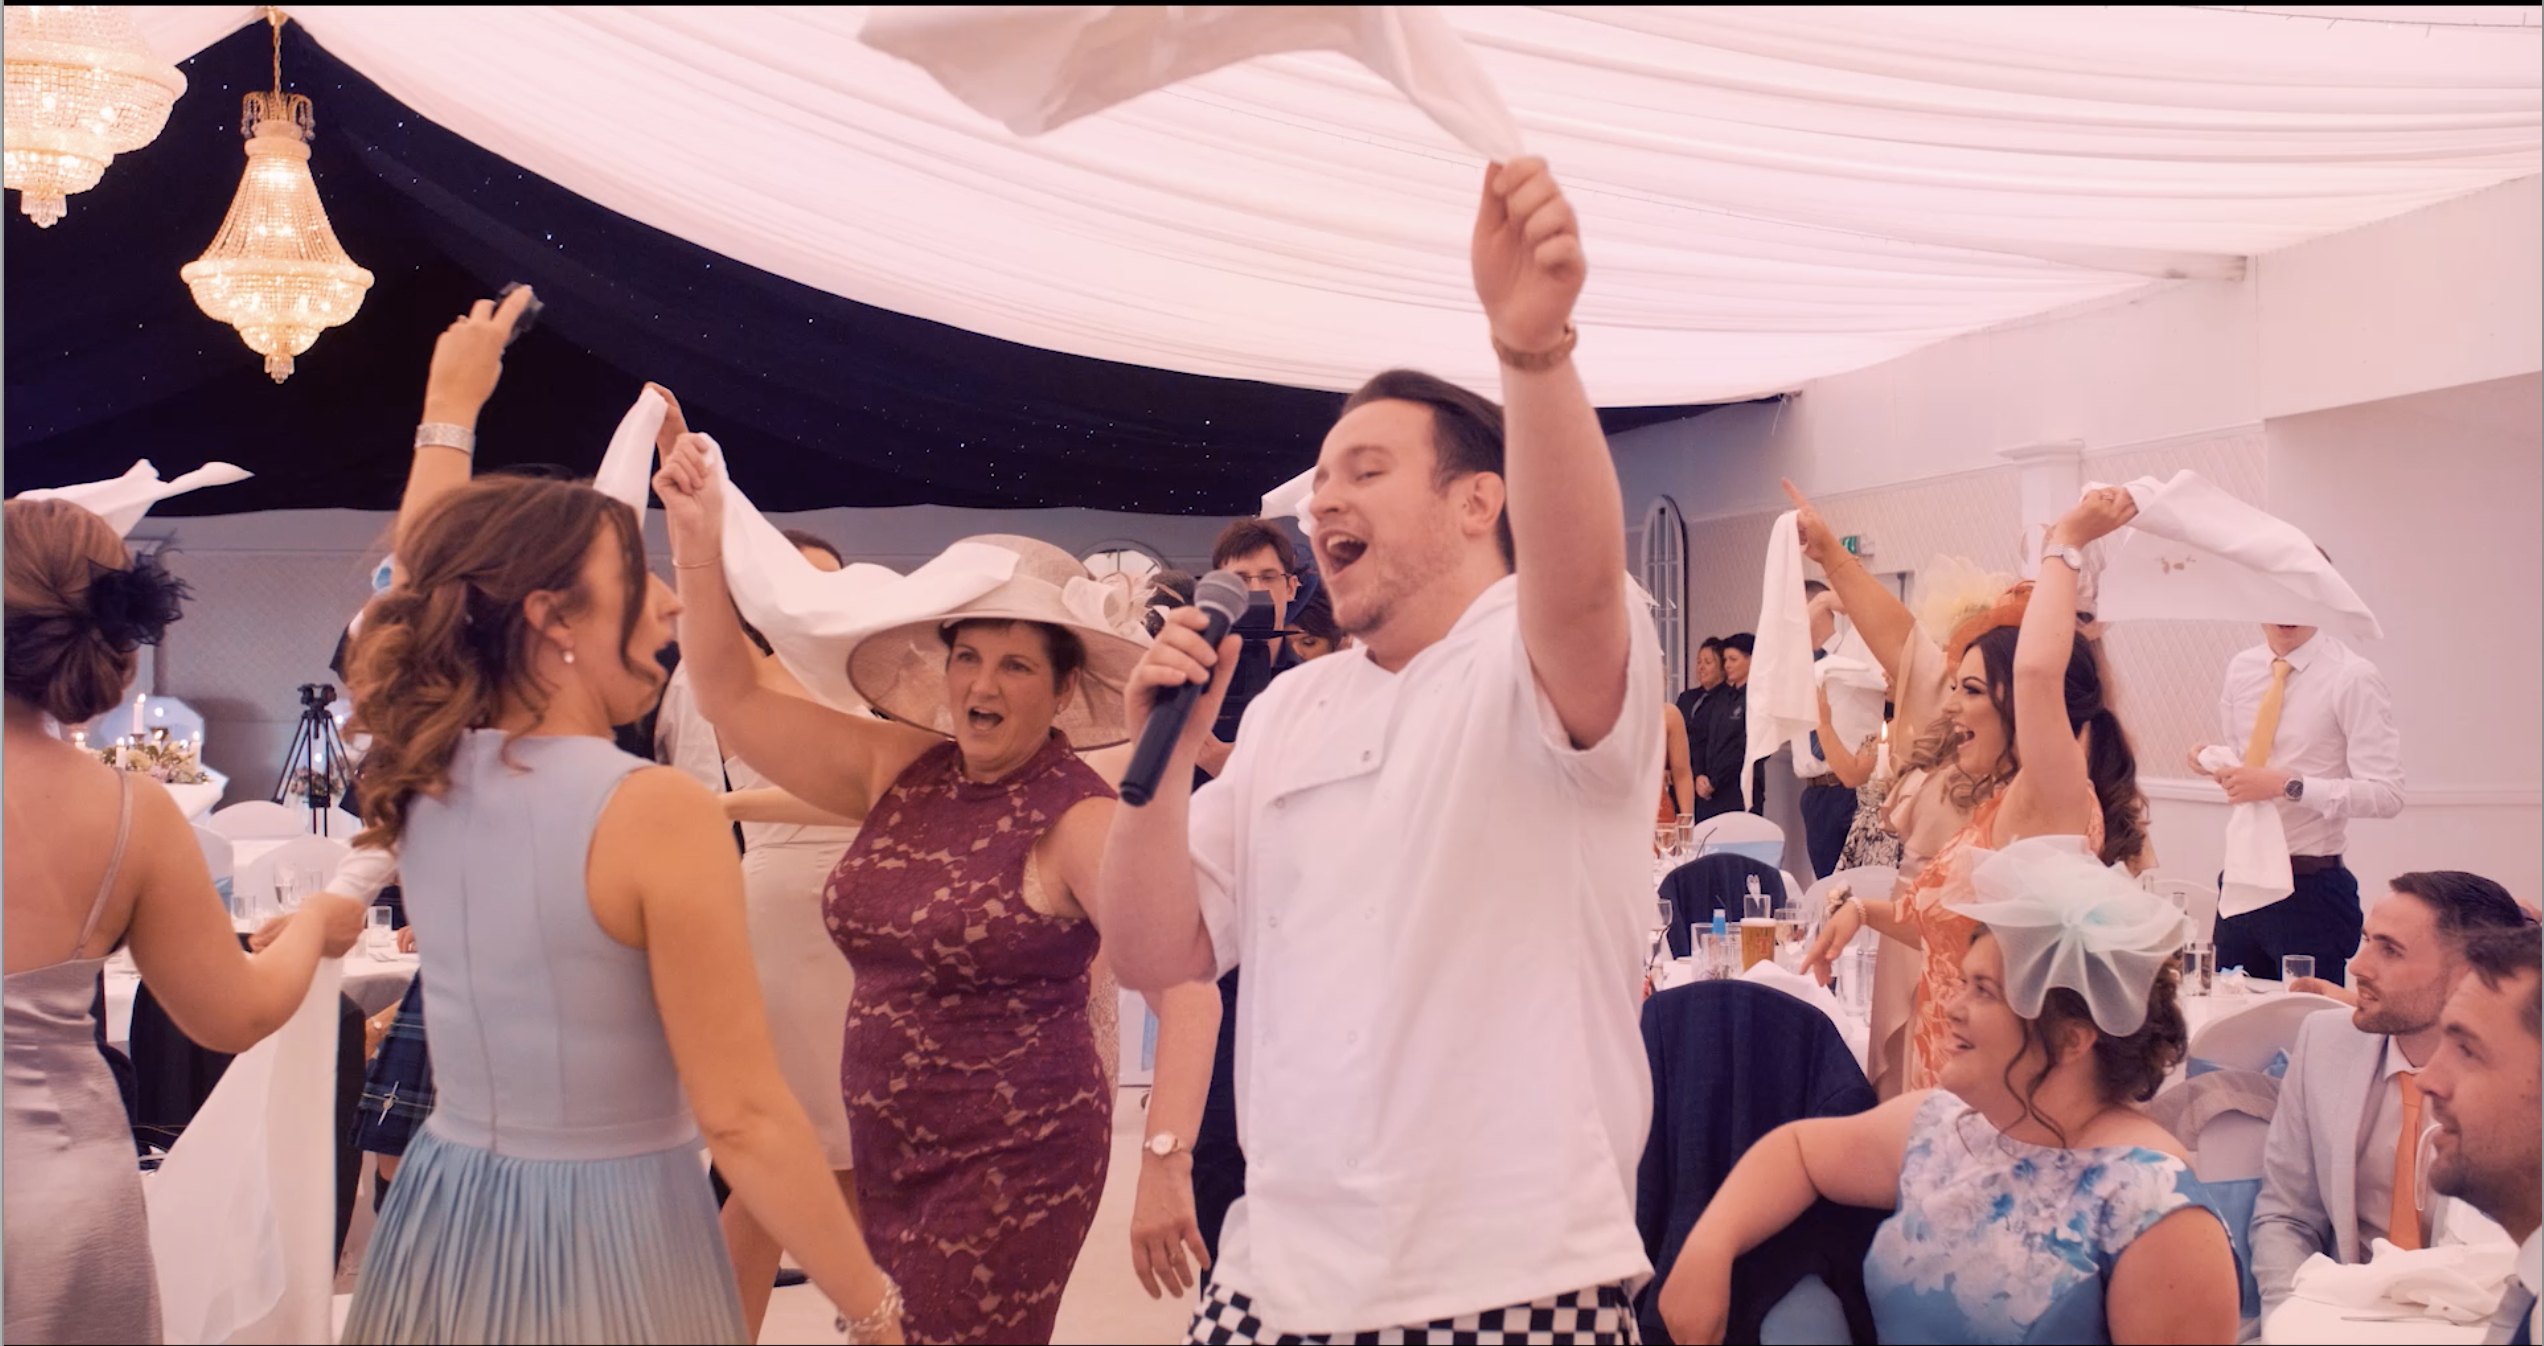 Get the party started with our group of singing waiters!